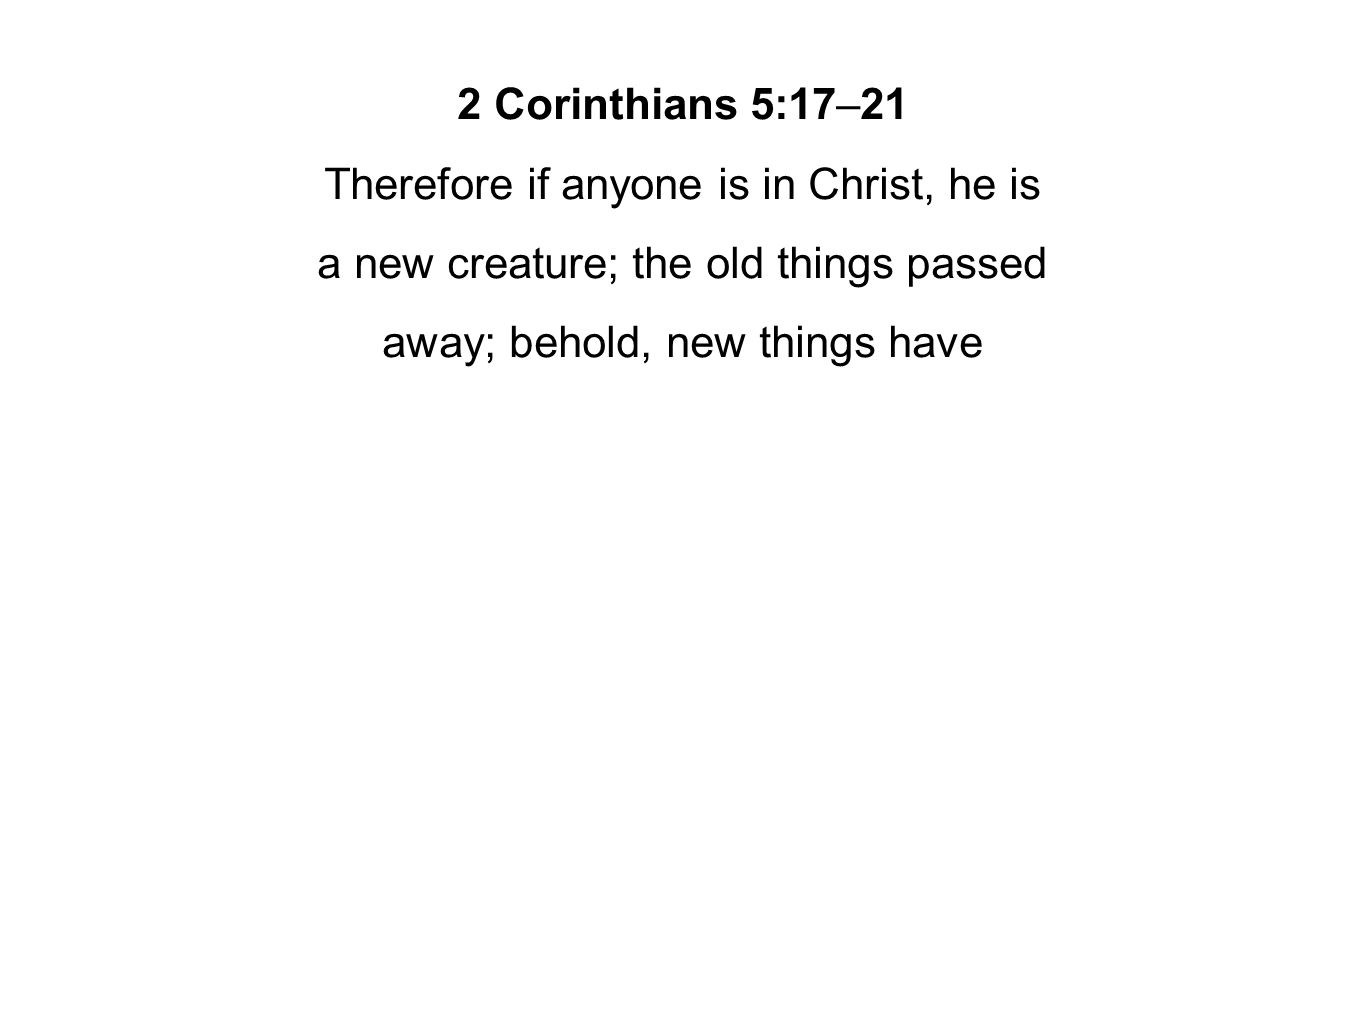 2 Corinthians 5:17–21 Therefore if anyone is in Christ, he is a new creature; the old things passed away; behold, new things have